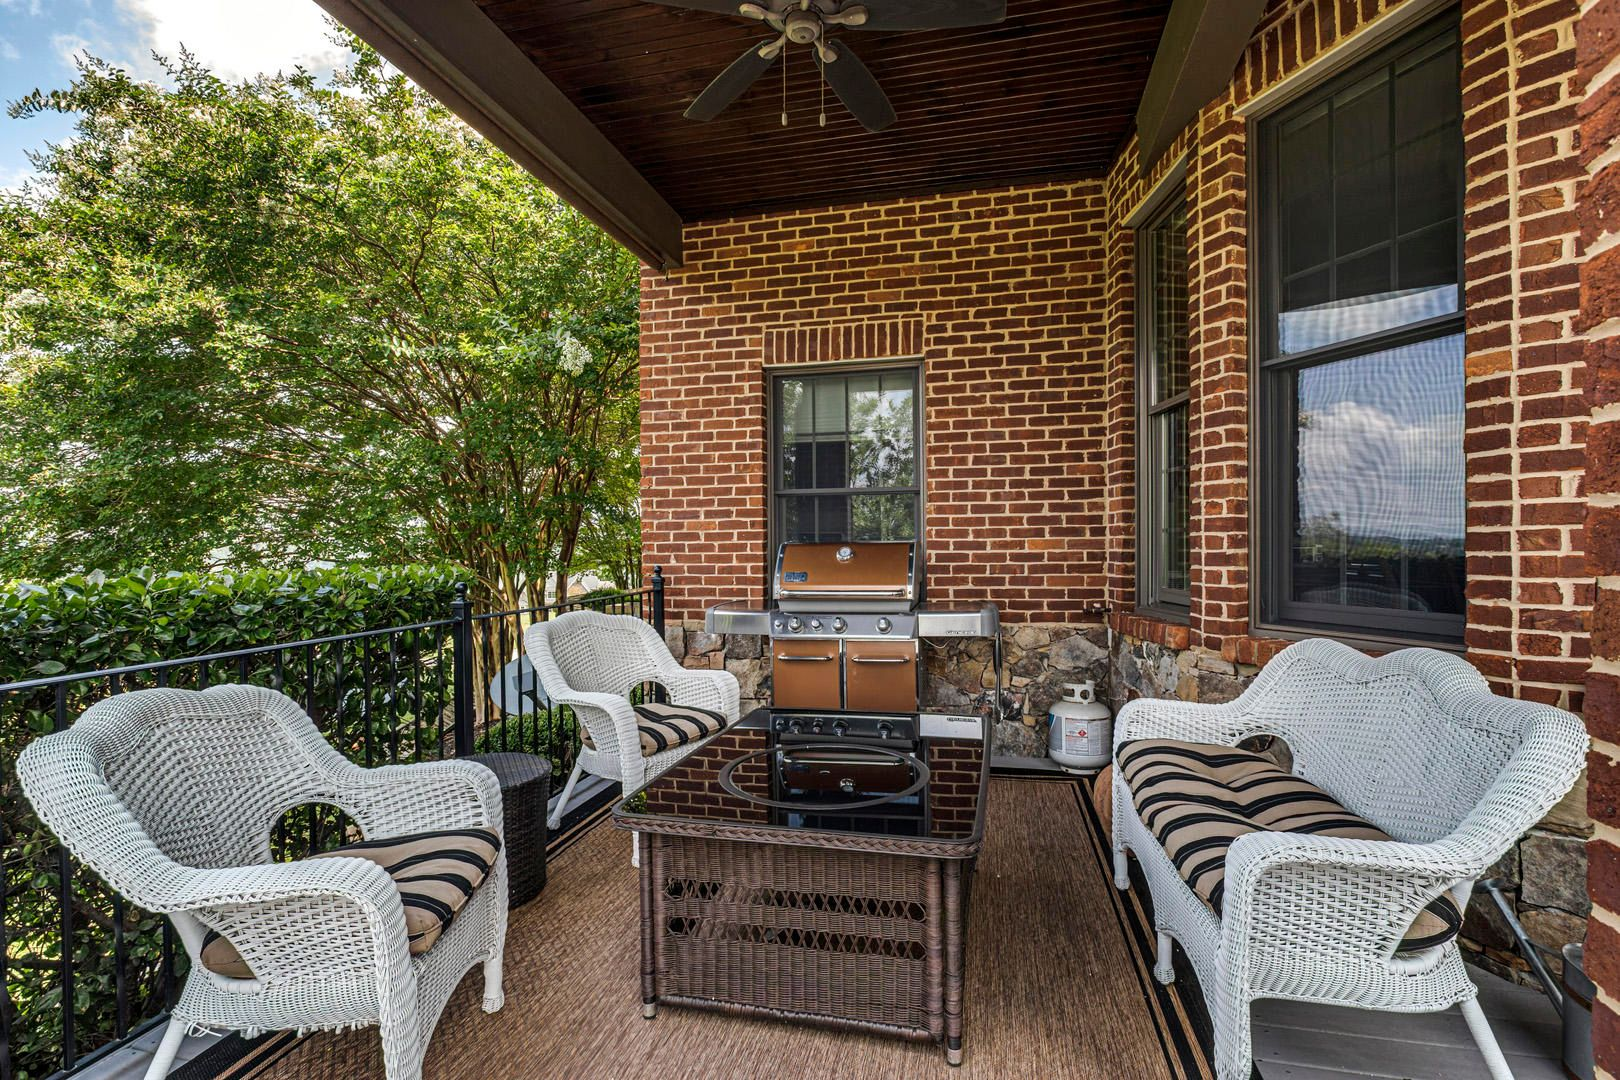 36_SouthernWay_438_Porch